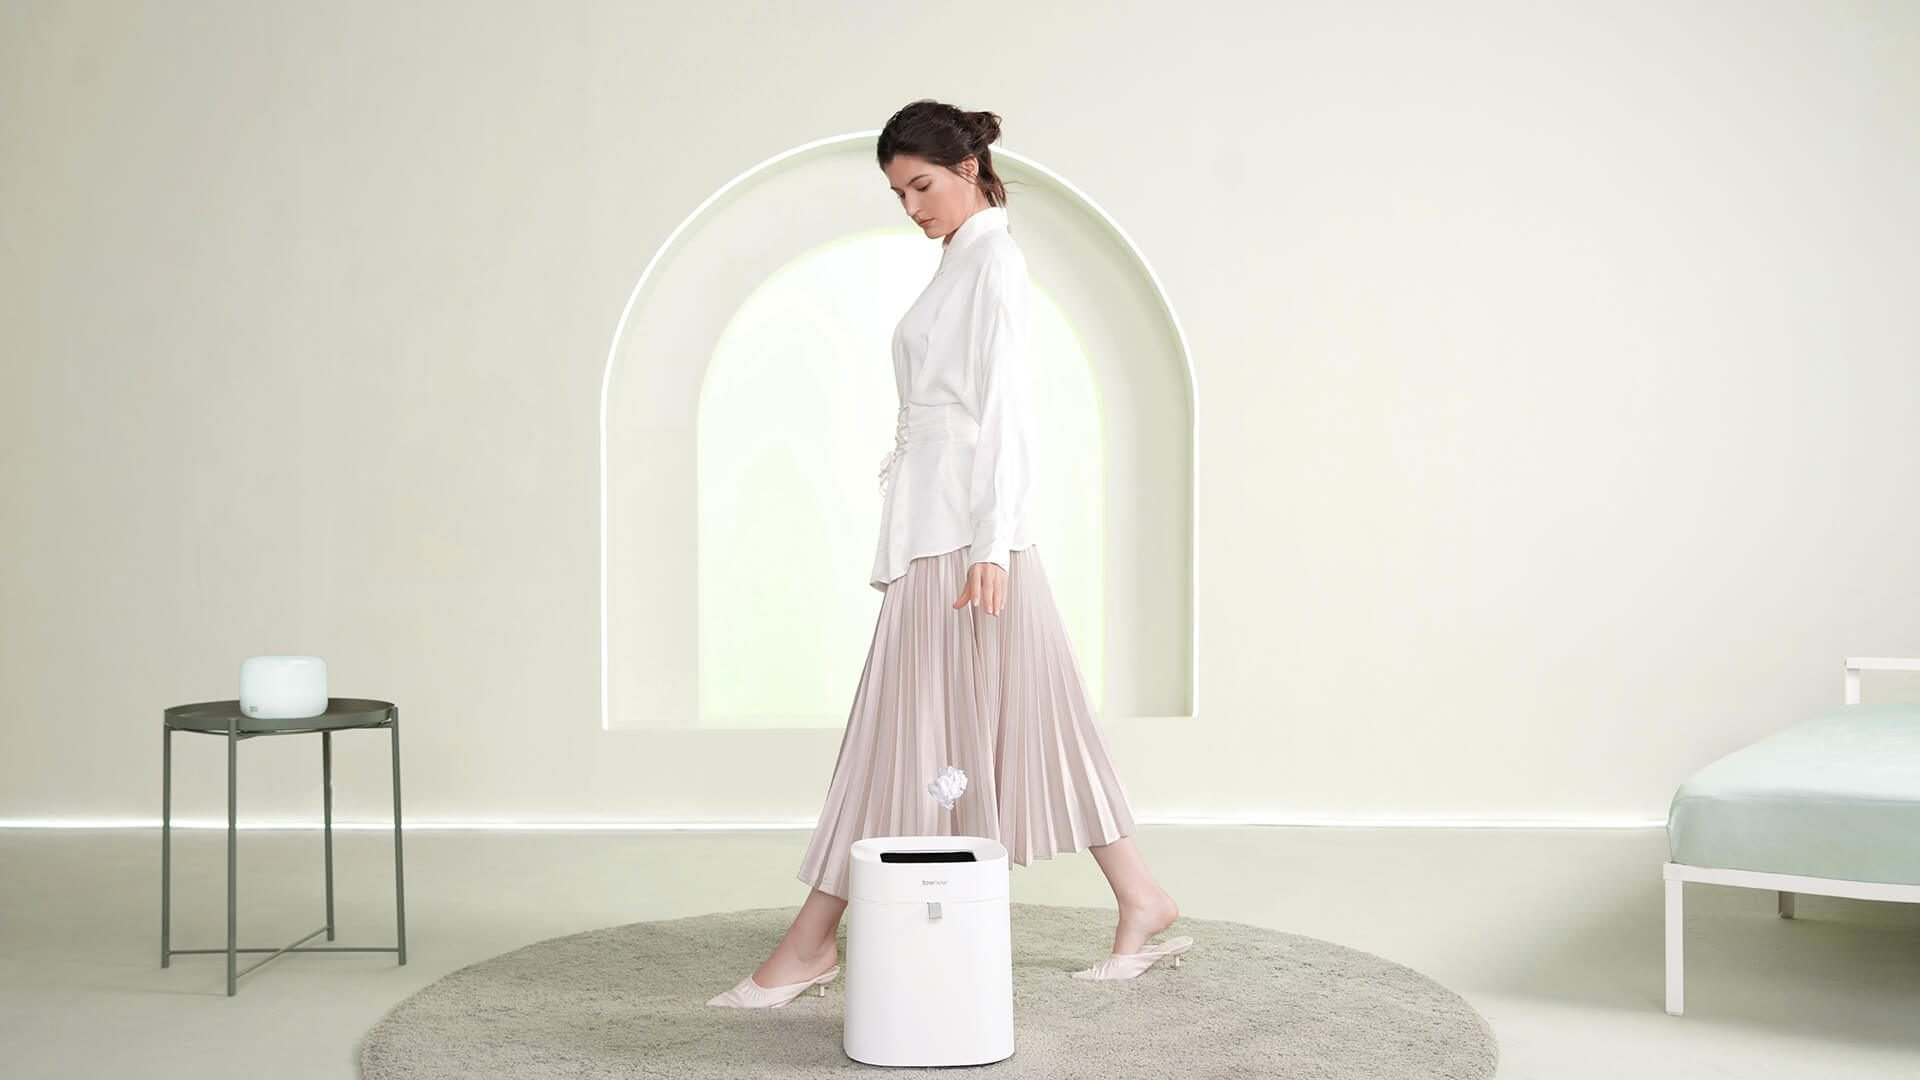 Townew T Air Lite smart trash can